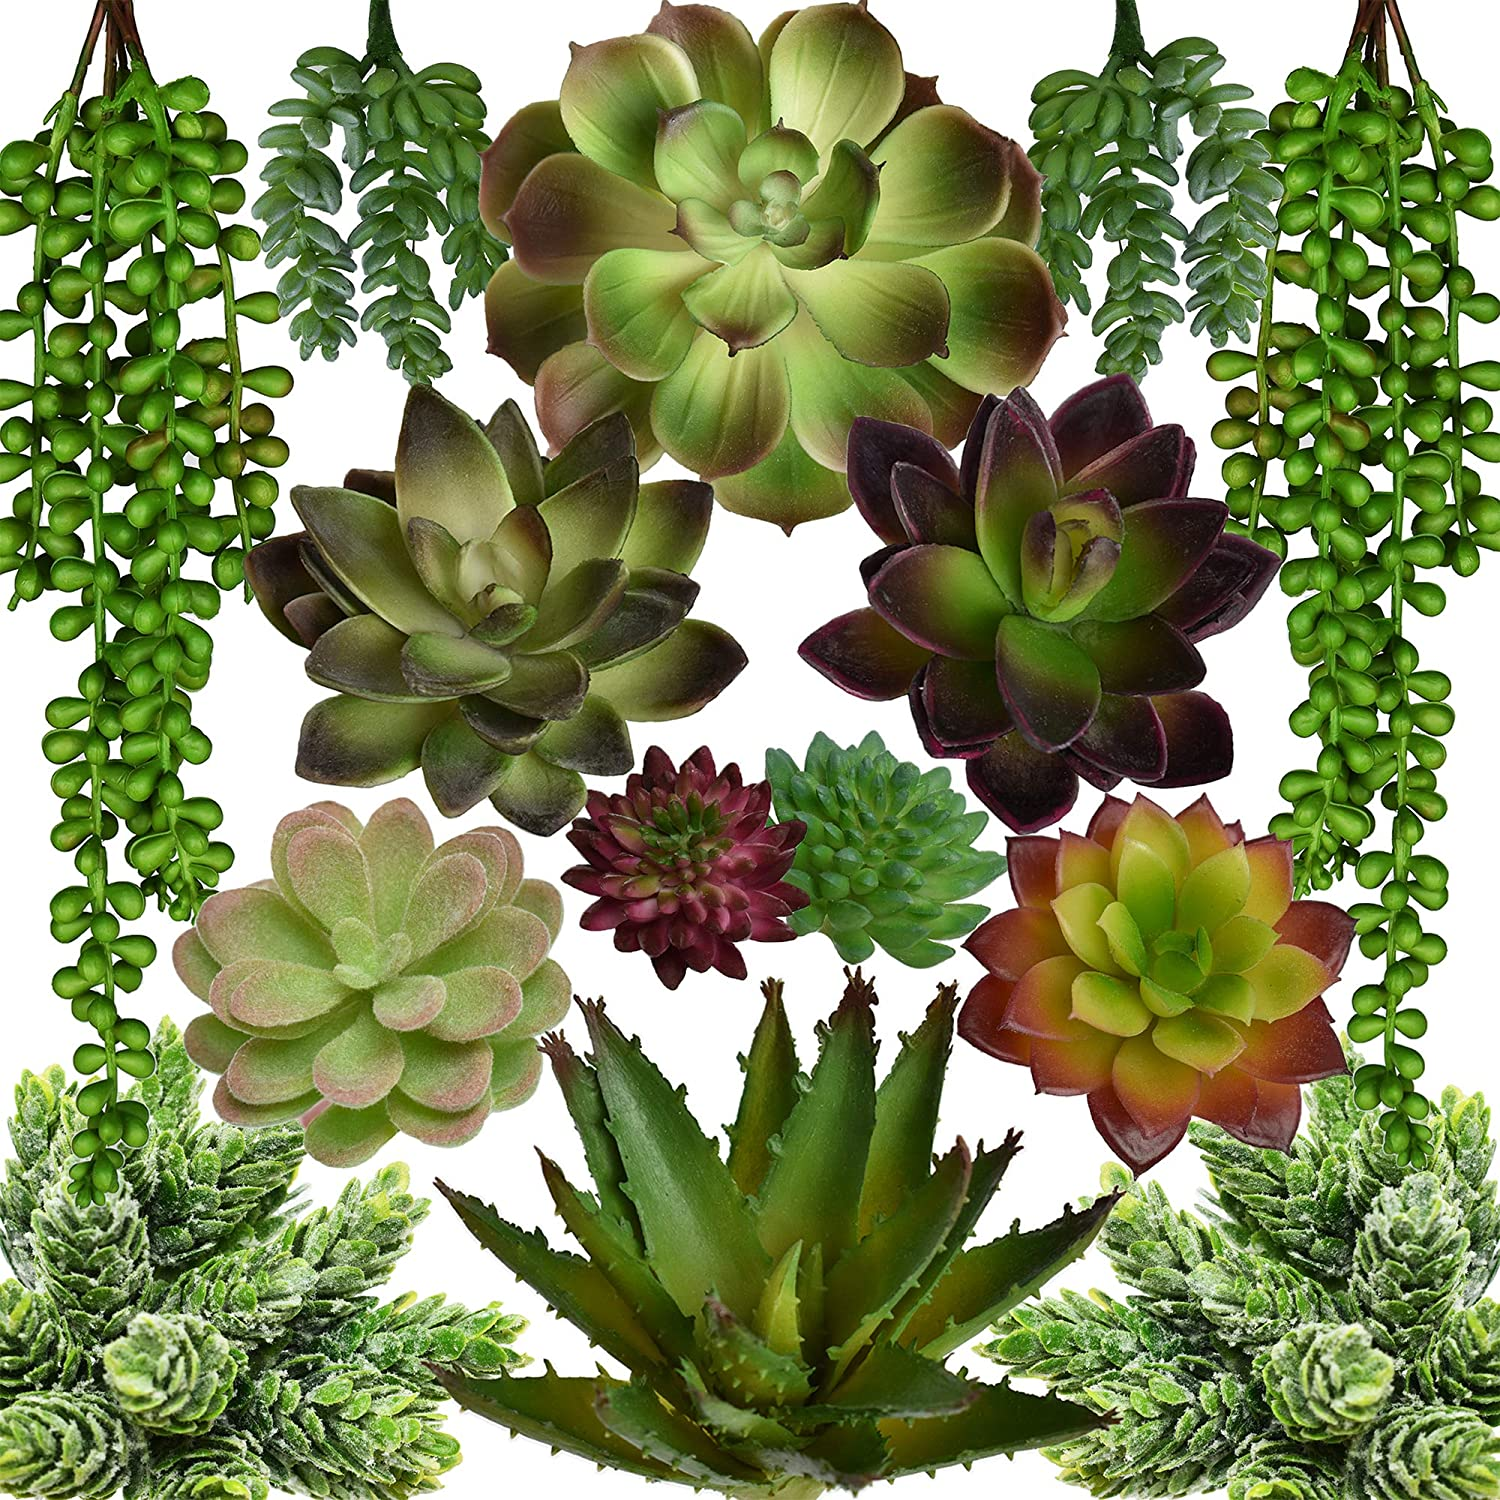 Seeko Artificial Succulents - 14 Pack - Create Realistic Succulent Arrangements, Faux Potted Succulent Decor, and Fake Succulent Planters